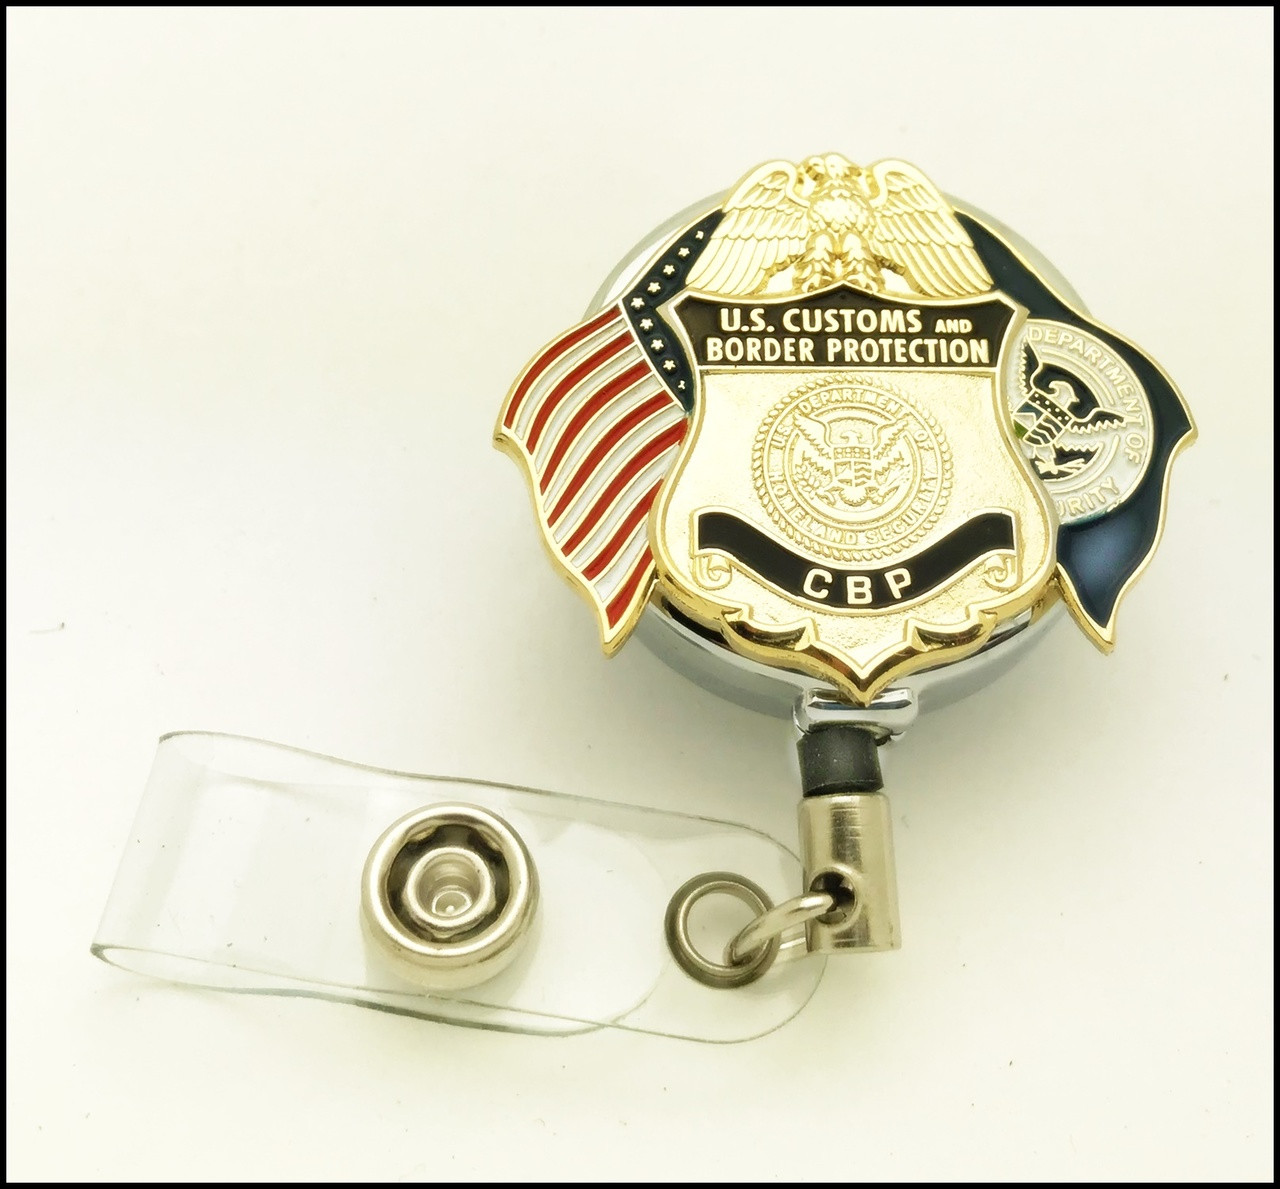 Customs and Border Protection Officer Mini Badge and Flags Chrome ID Reel